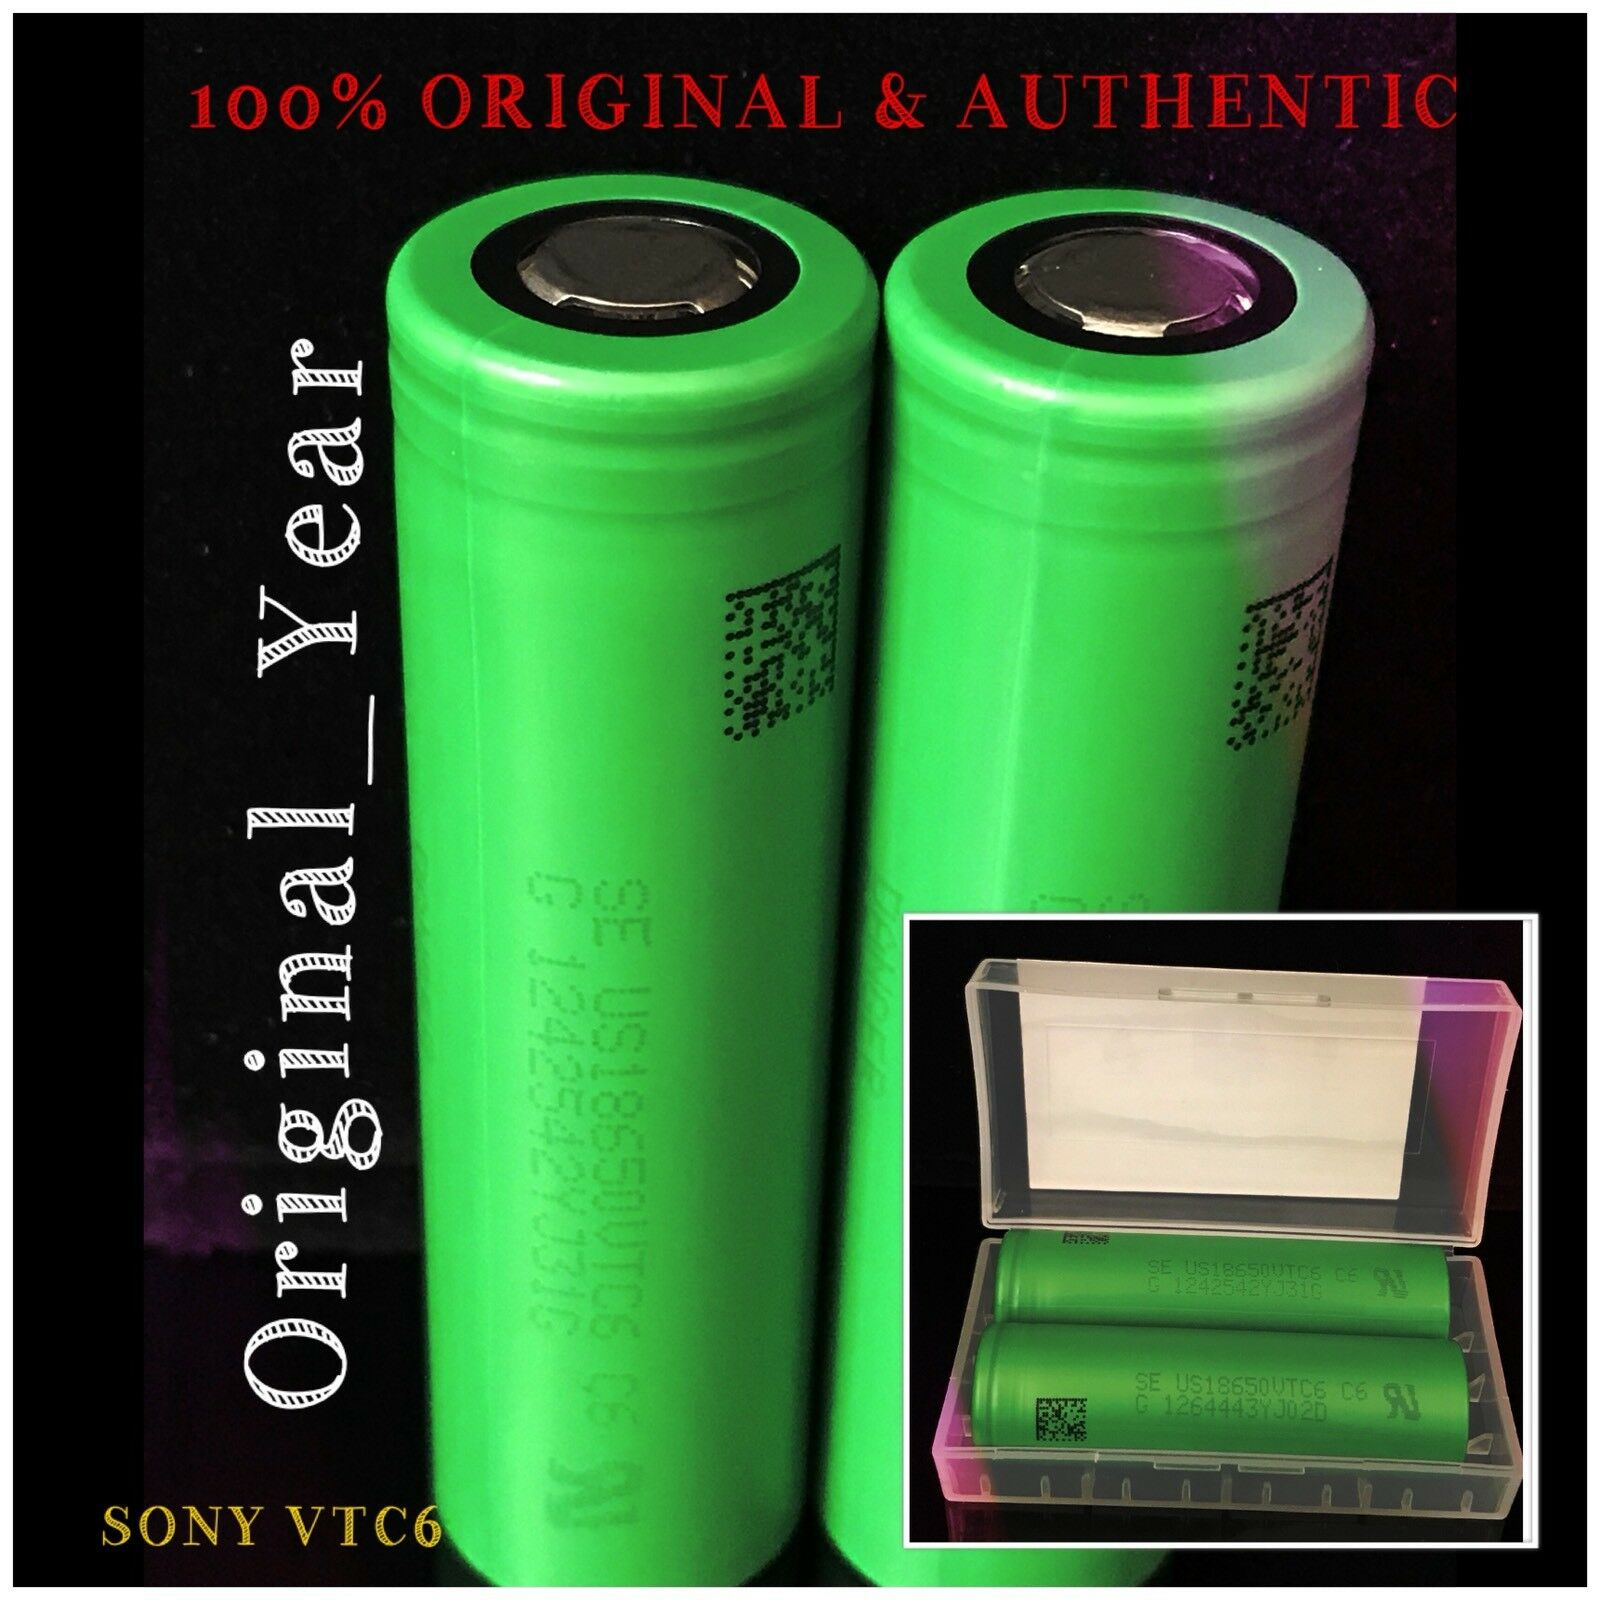 2 Sony 18650 Vtc6 3000mah High Drain 30a 15a Discharge 36v 2400mah Rechargeable Liion Batteries W Protection Circuit Battery 1 Of 11only 0 Available See More